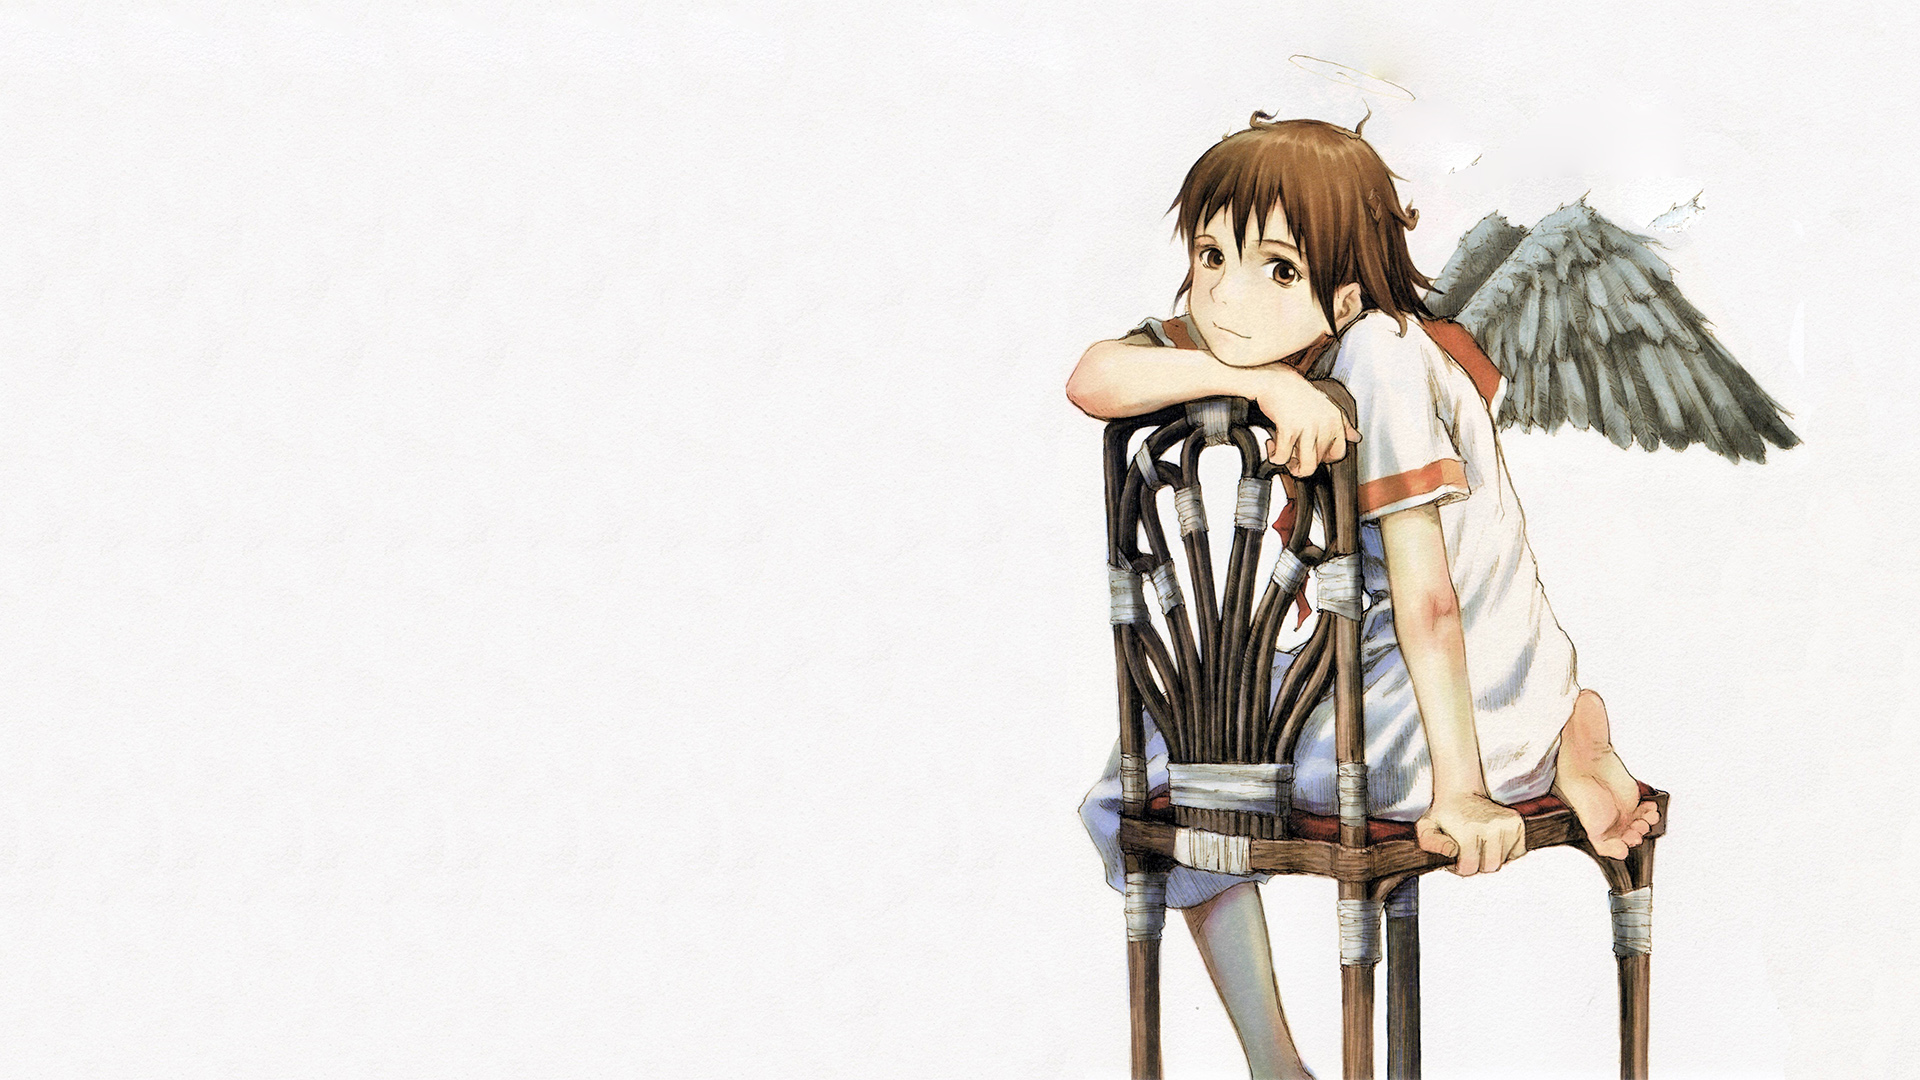 1920x1080 > Haibane Renmei Wallpapers